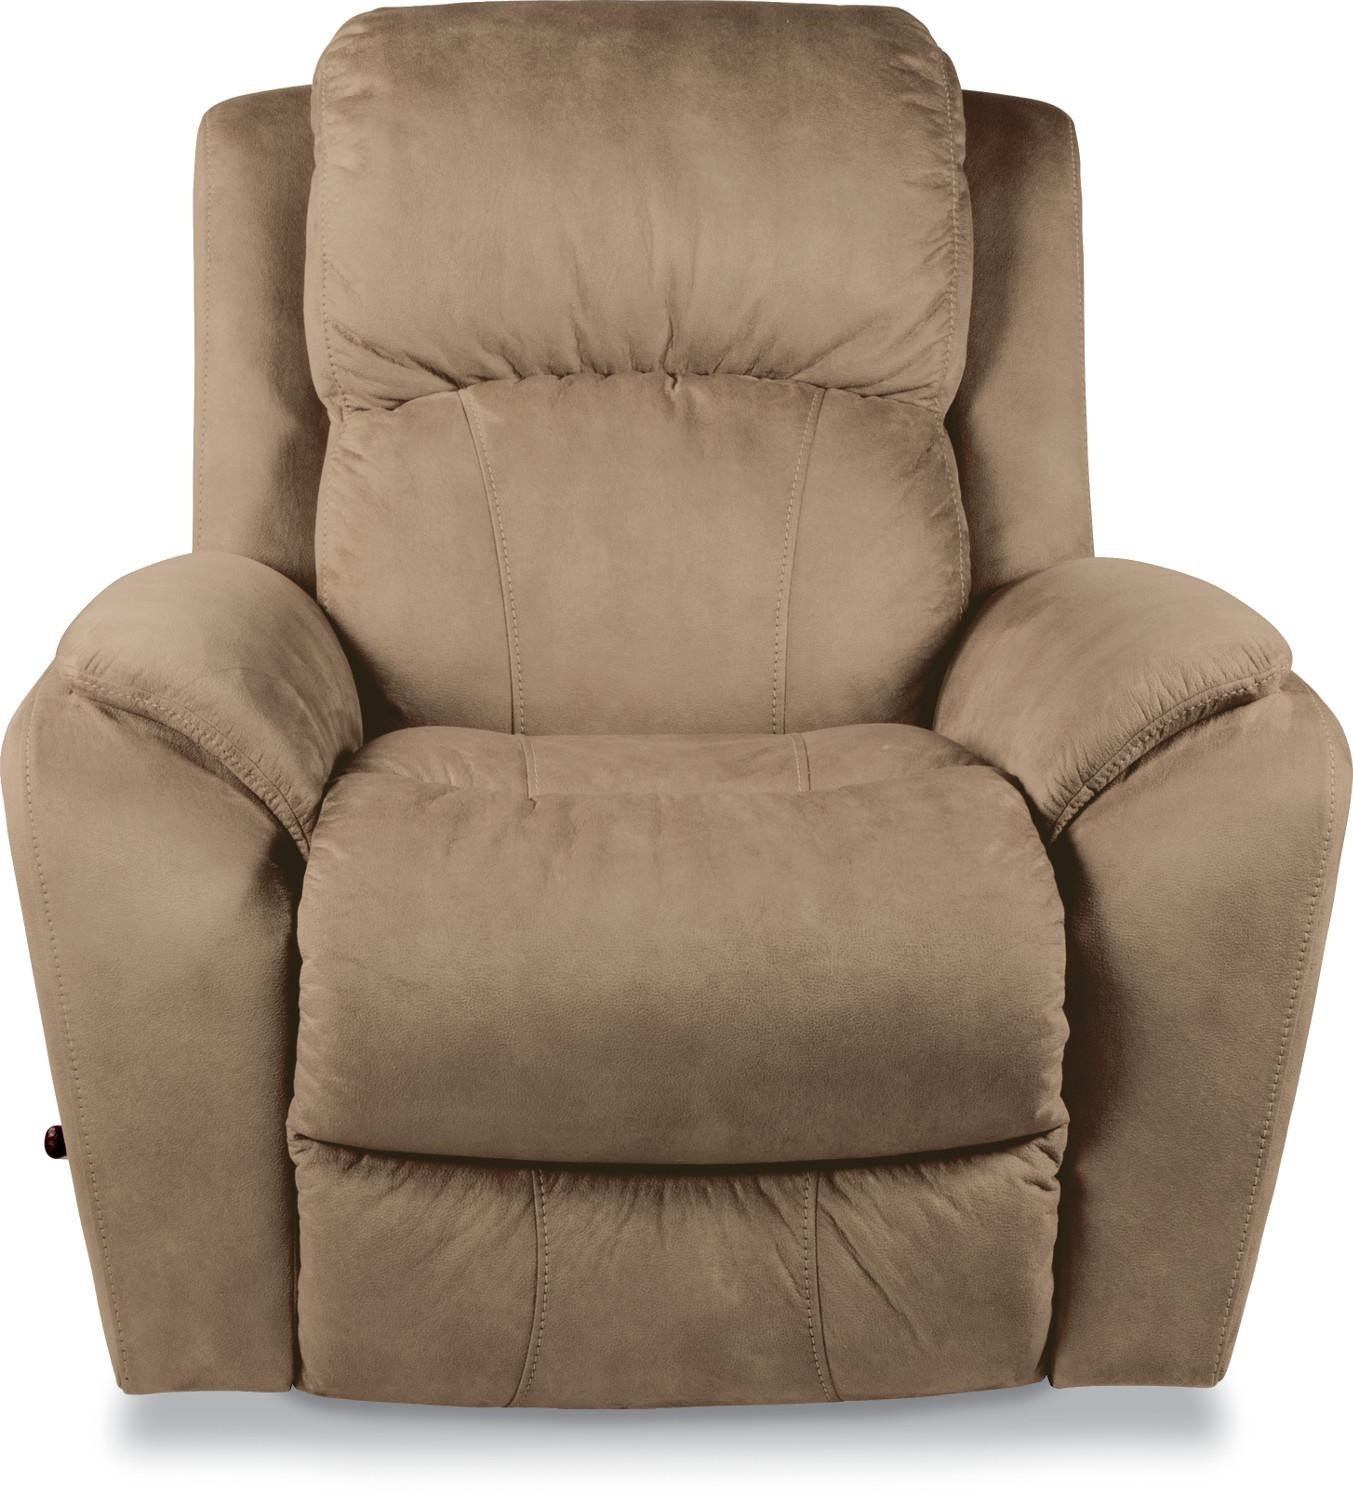 Recliner Pillow Barrett Casual Reclina Way Wall Recliner With Pillow Arms By La Z Boy At Reid S Furniture